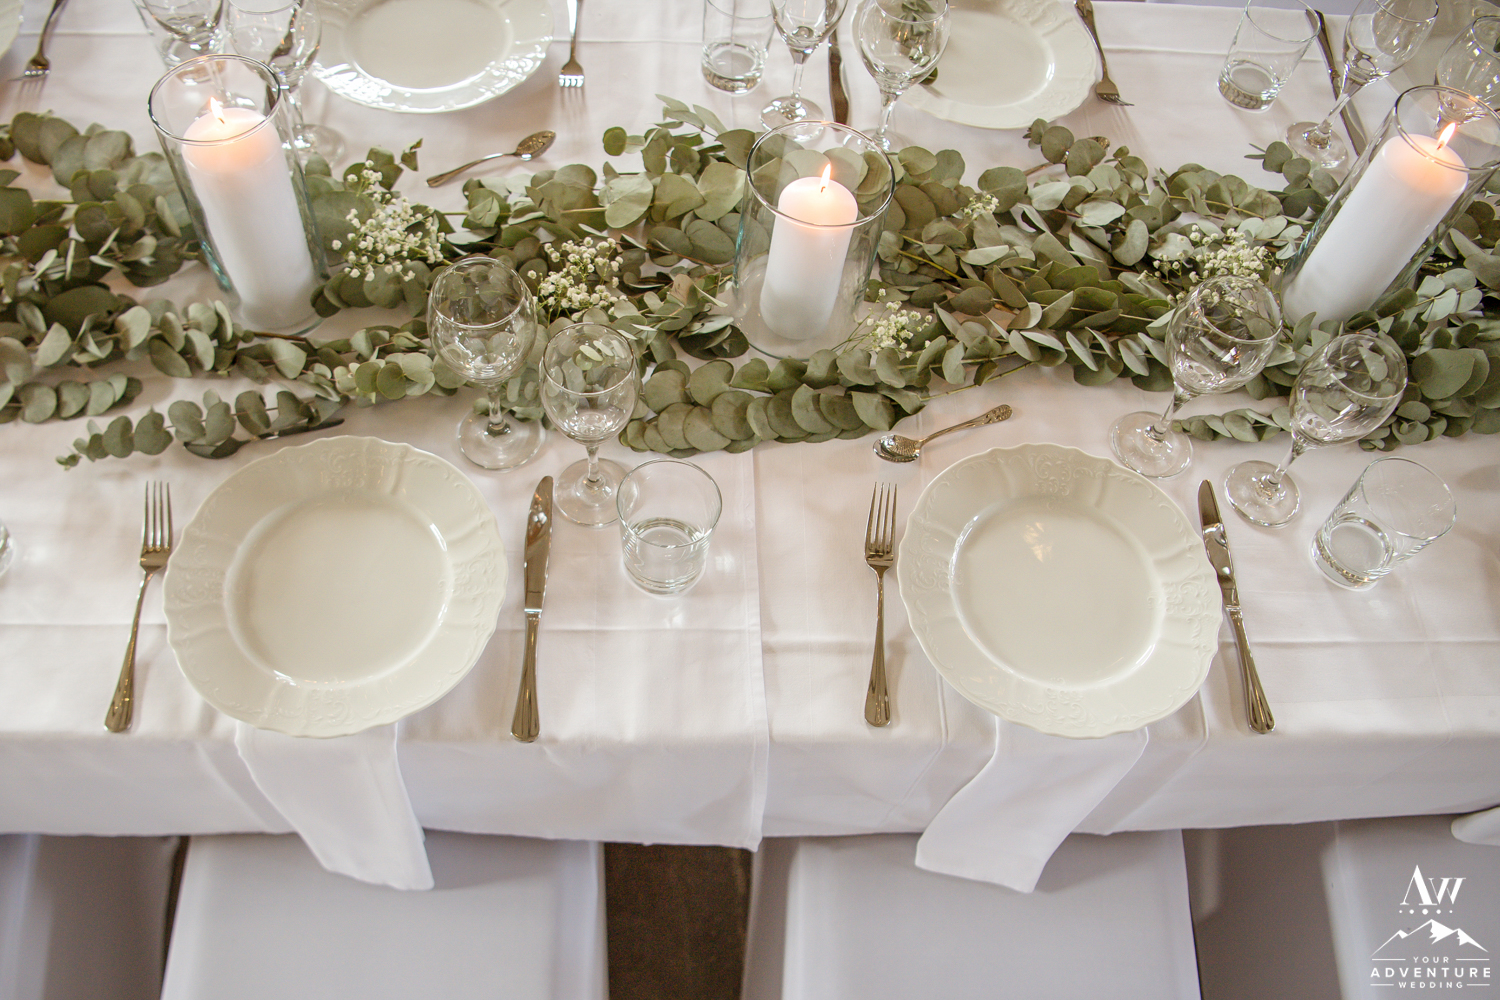 Table Setting for Iceland Wedding Reception